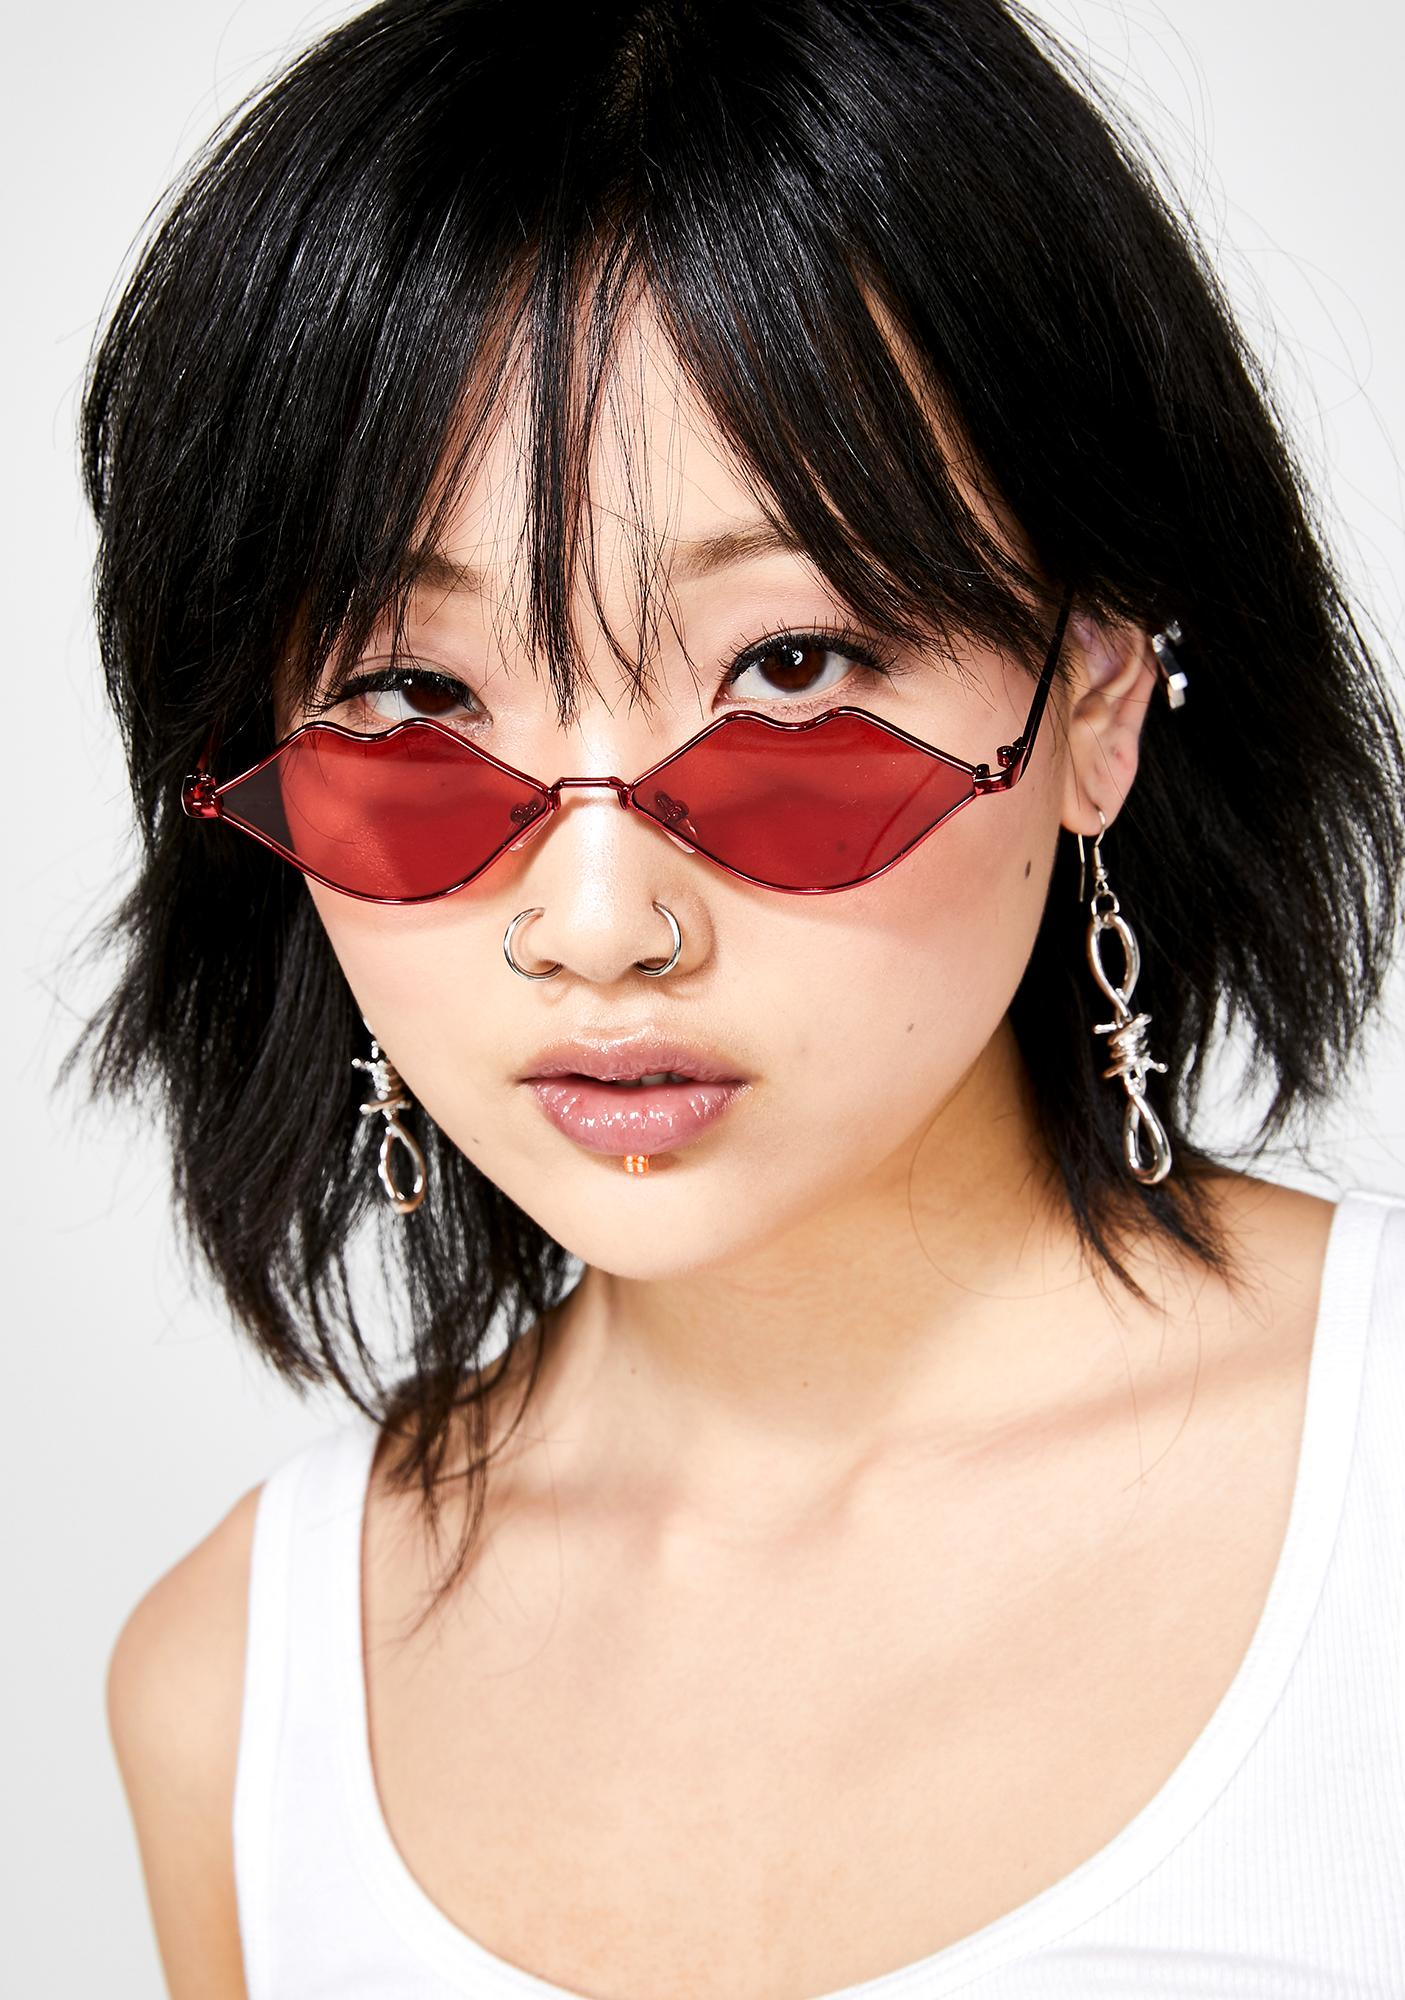 Pucker Lips Sunnies by Giant Vintage